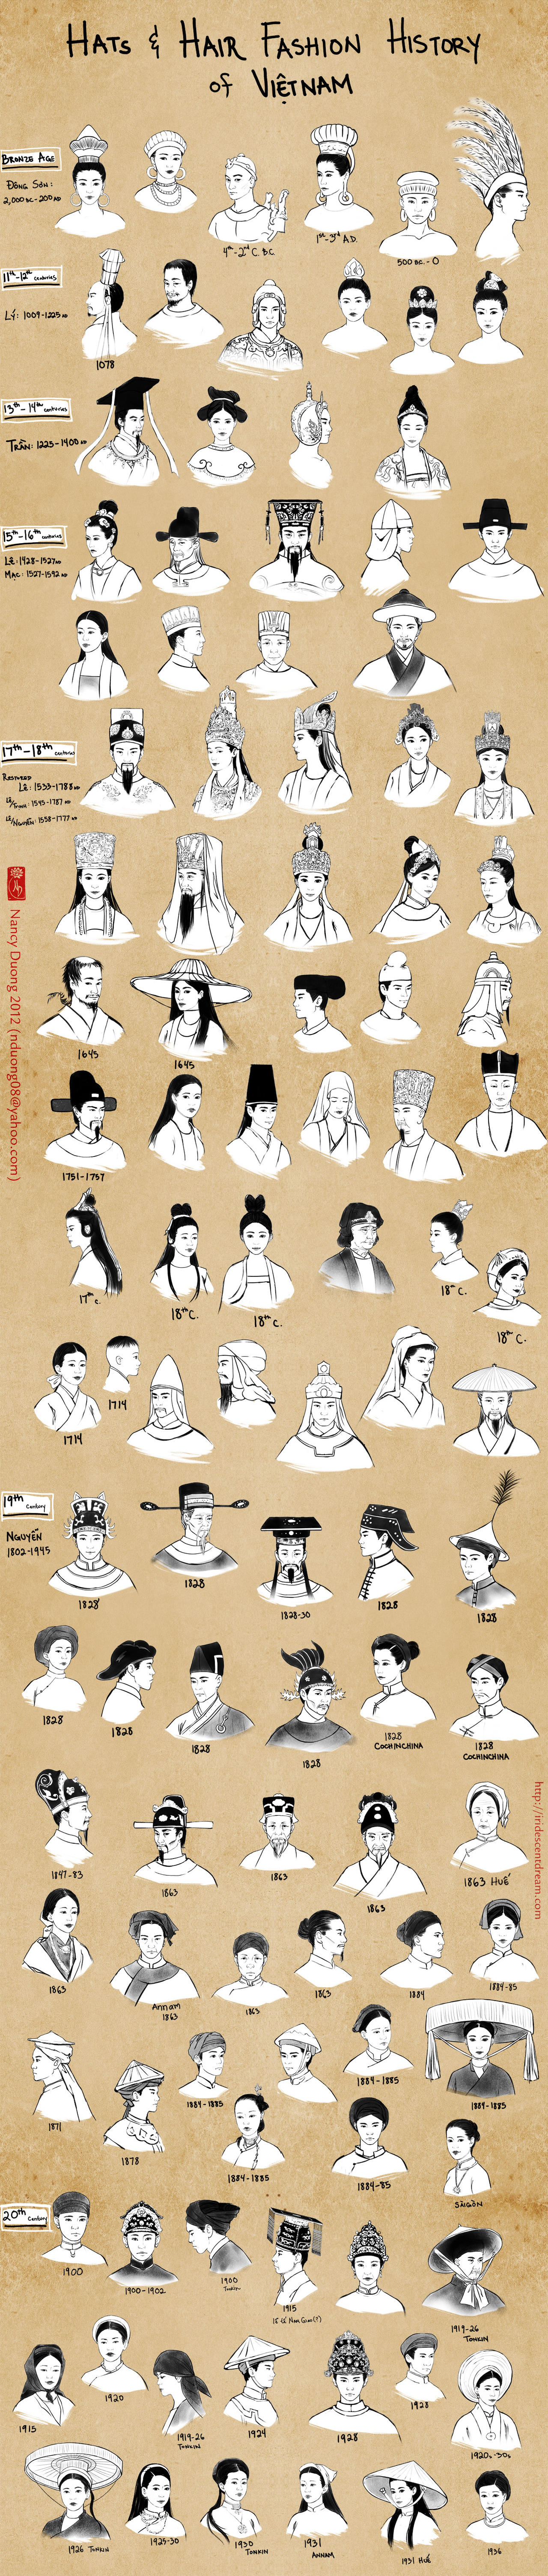 Hats And Hair Fashion History Vietnam By Lilsuika On